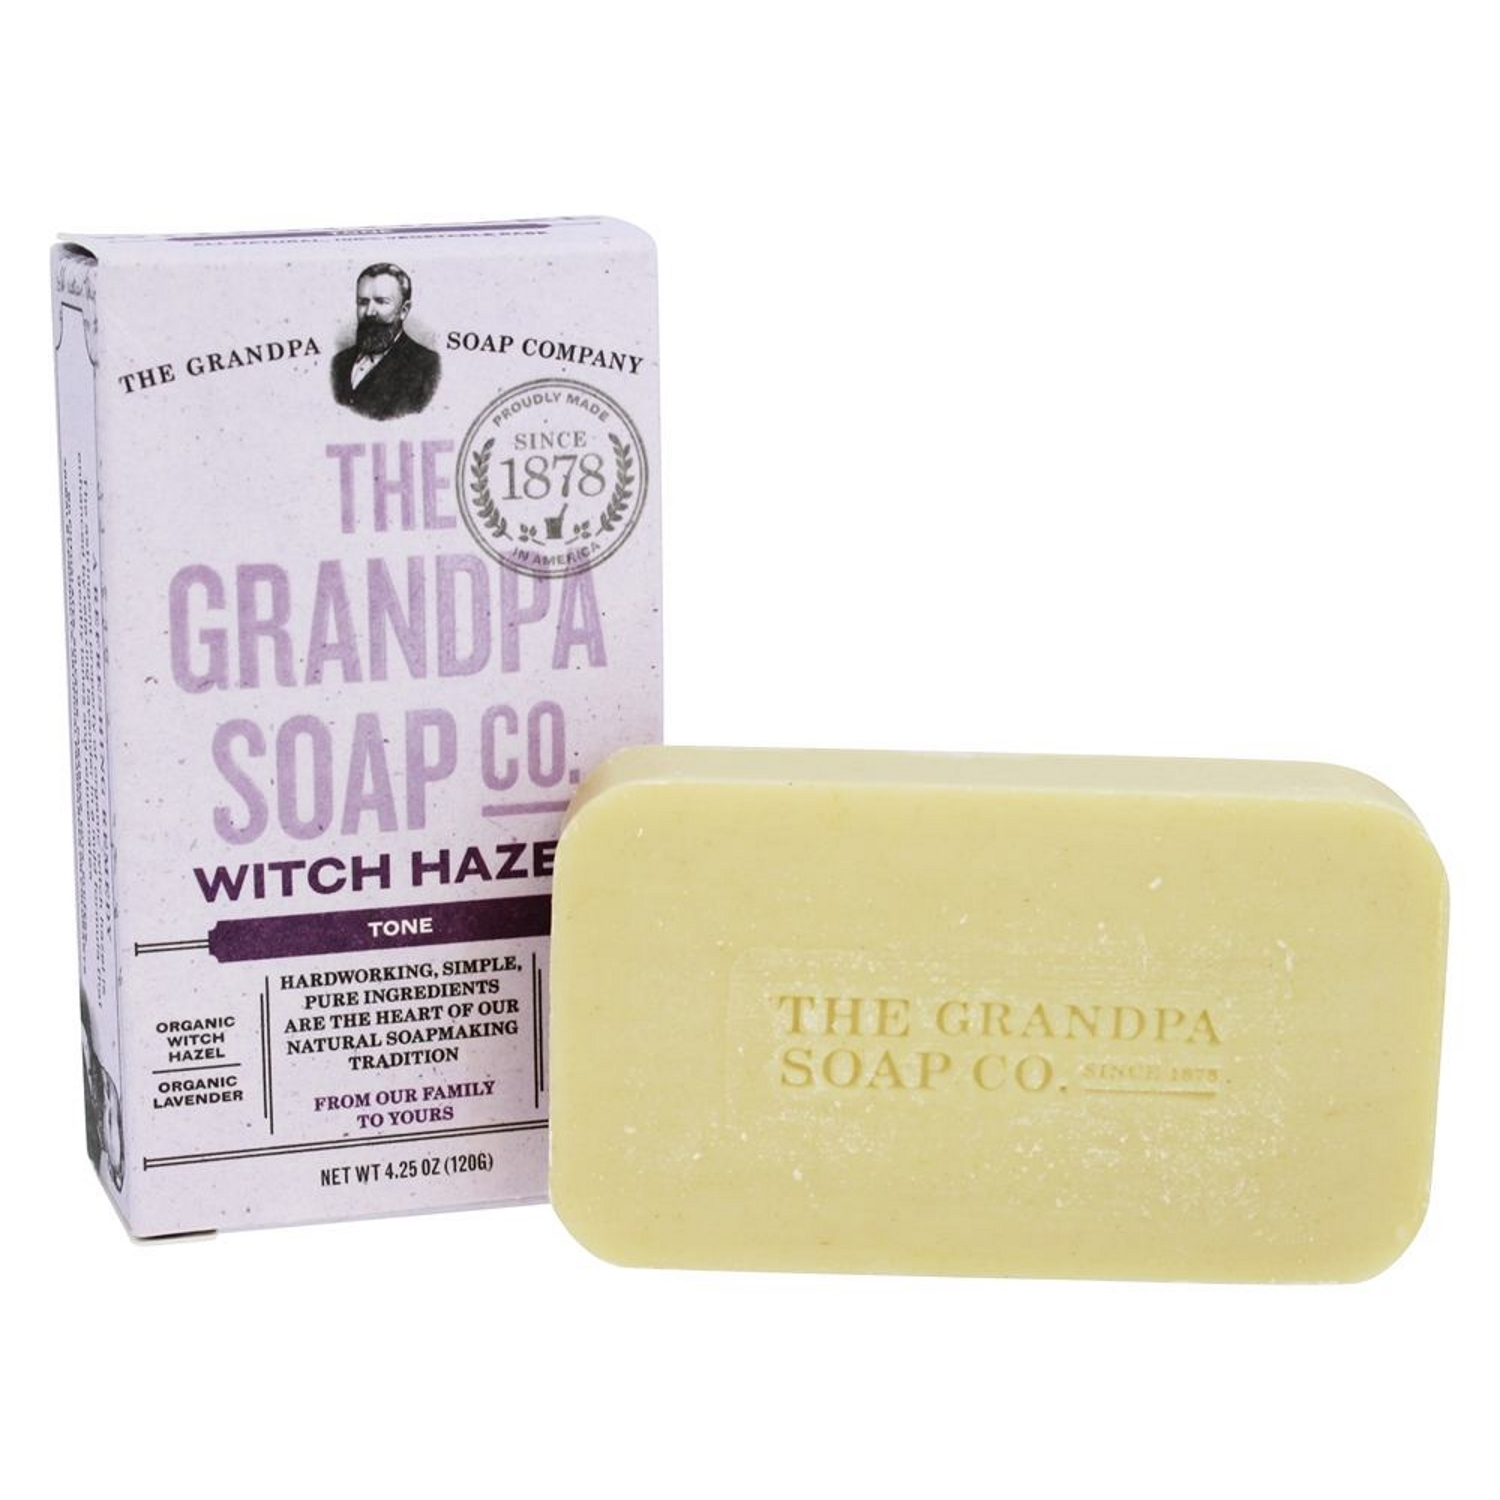 Wholesale soap made with witch hazel